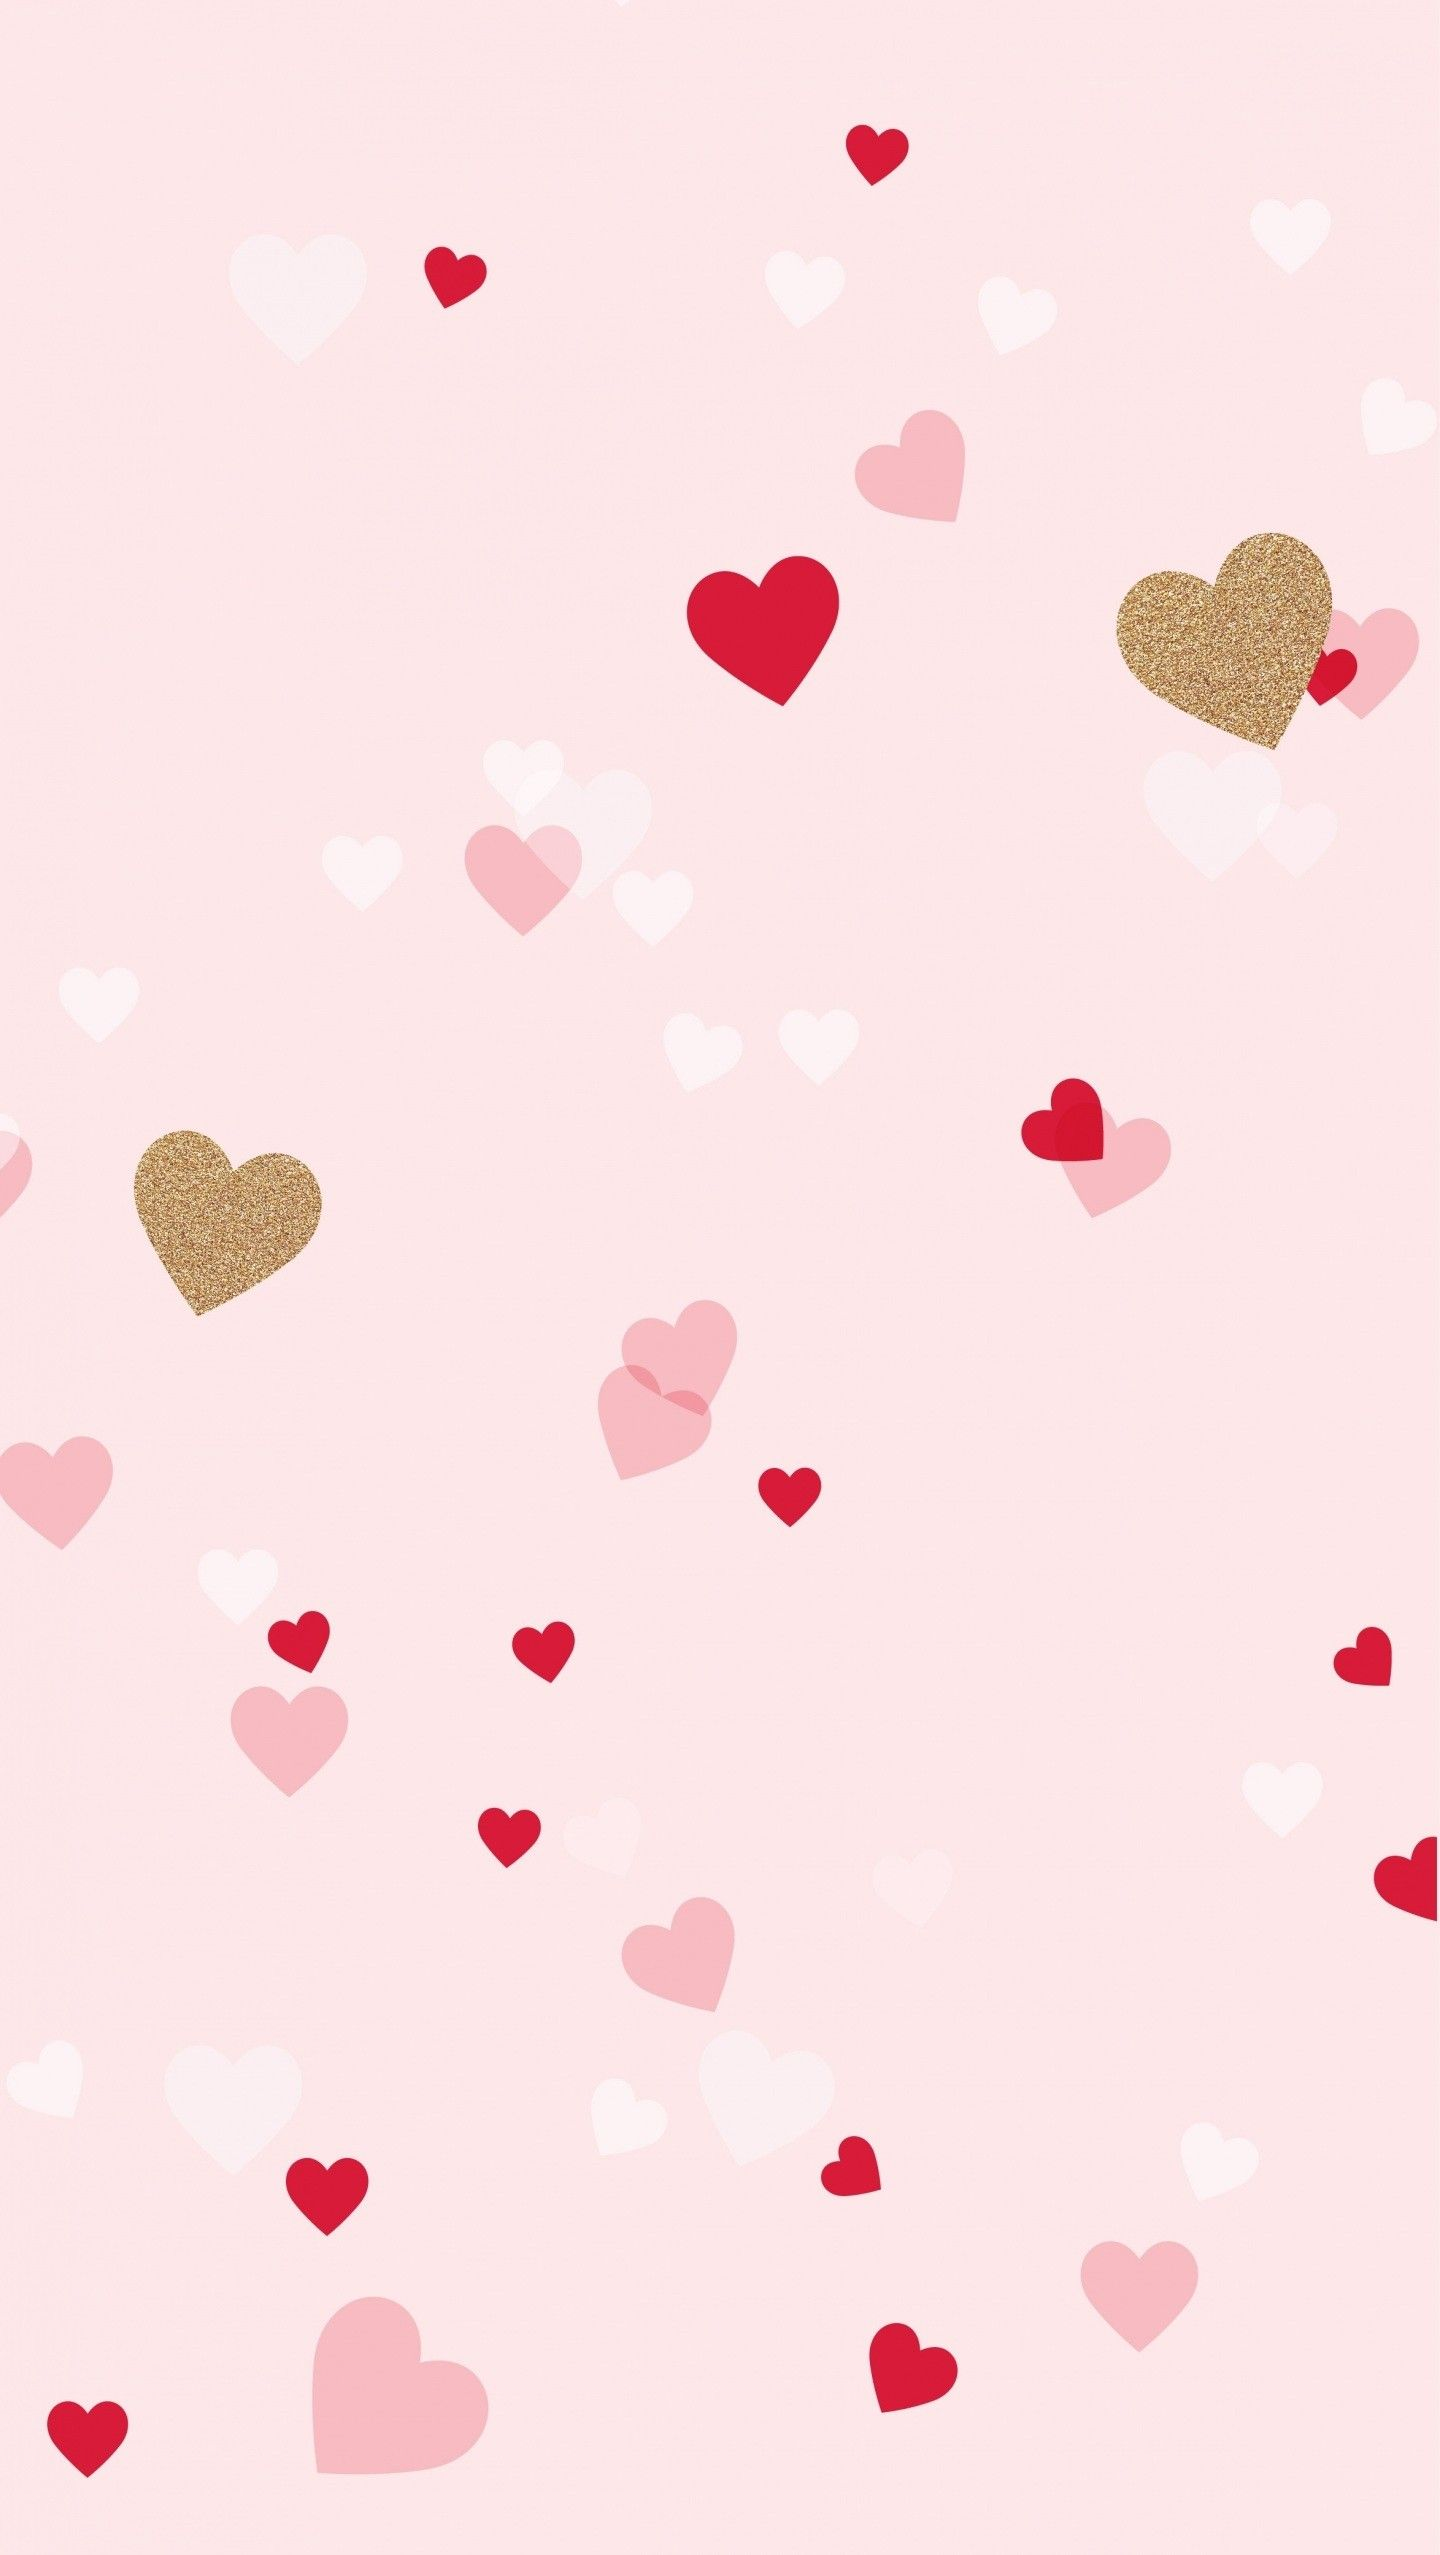 Wallpaper Iphone Cute Hd Cute Hearts Iphone Background